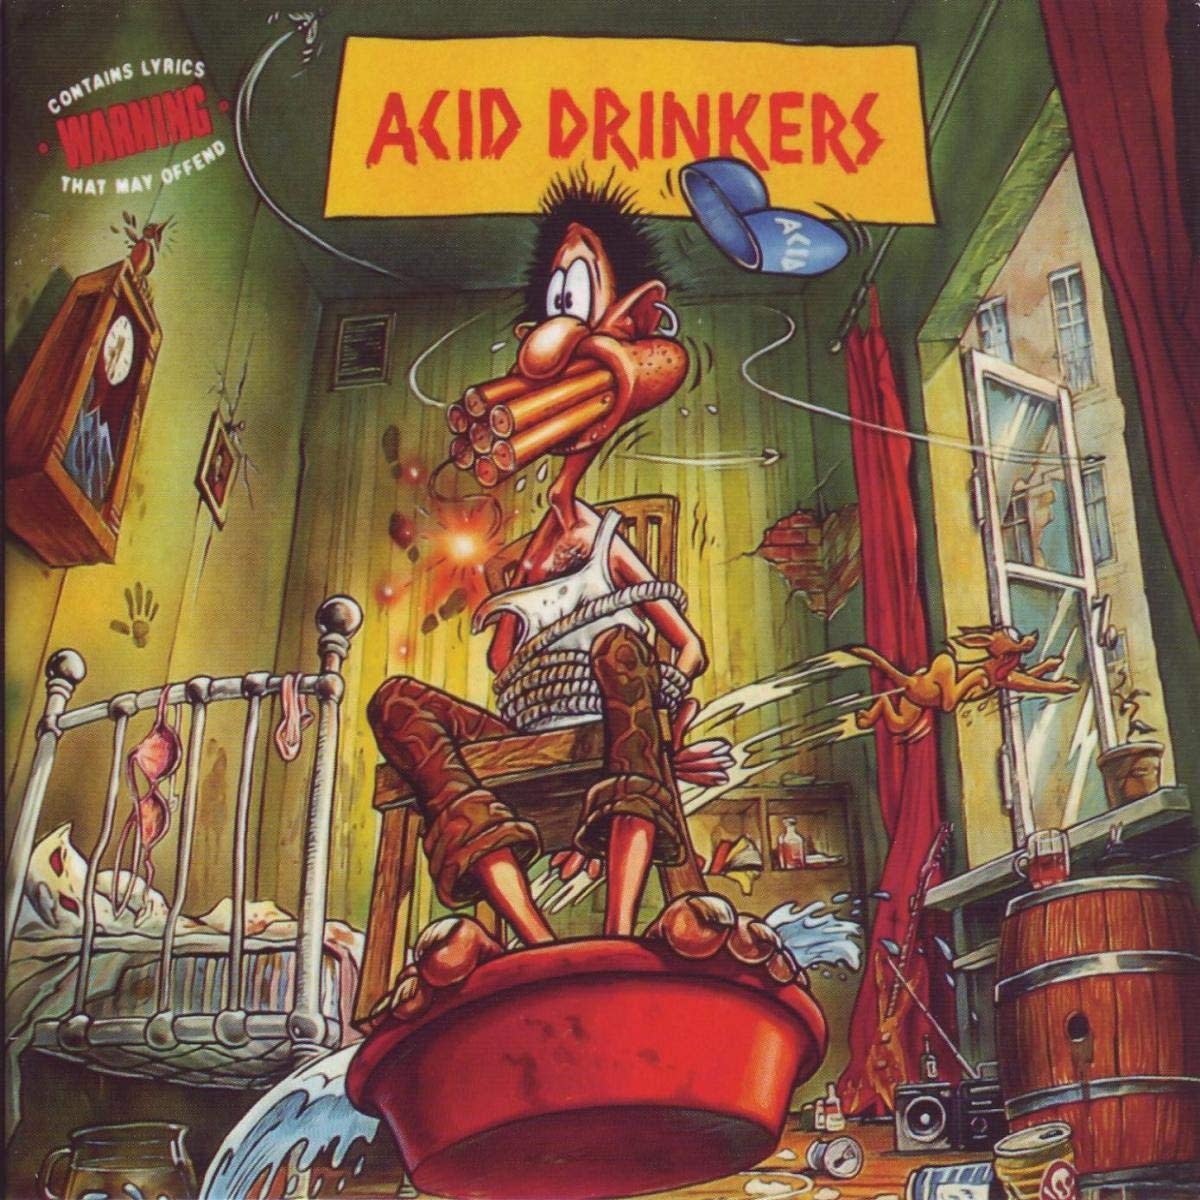 review-of-the-album-are-you-a-rebel-by-acid-drinkers